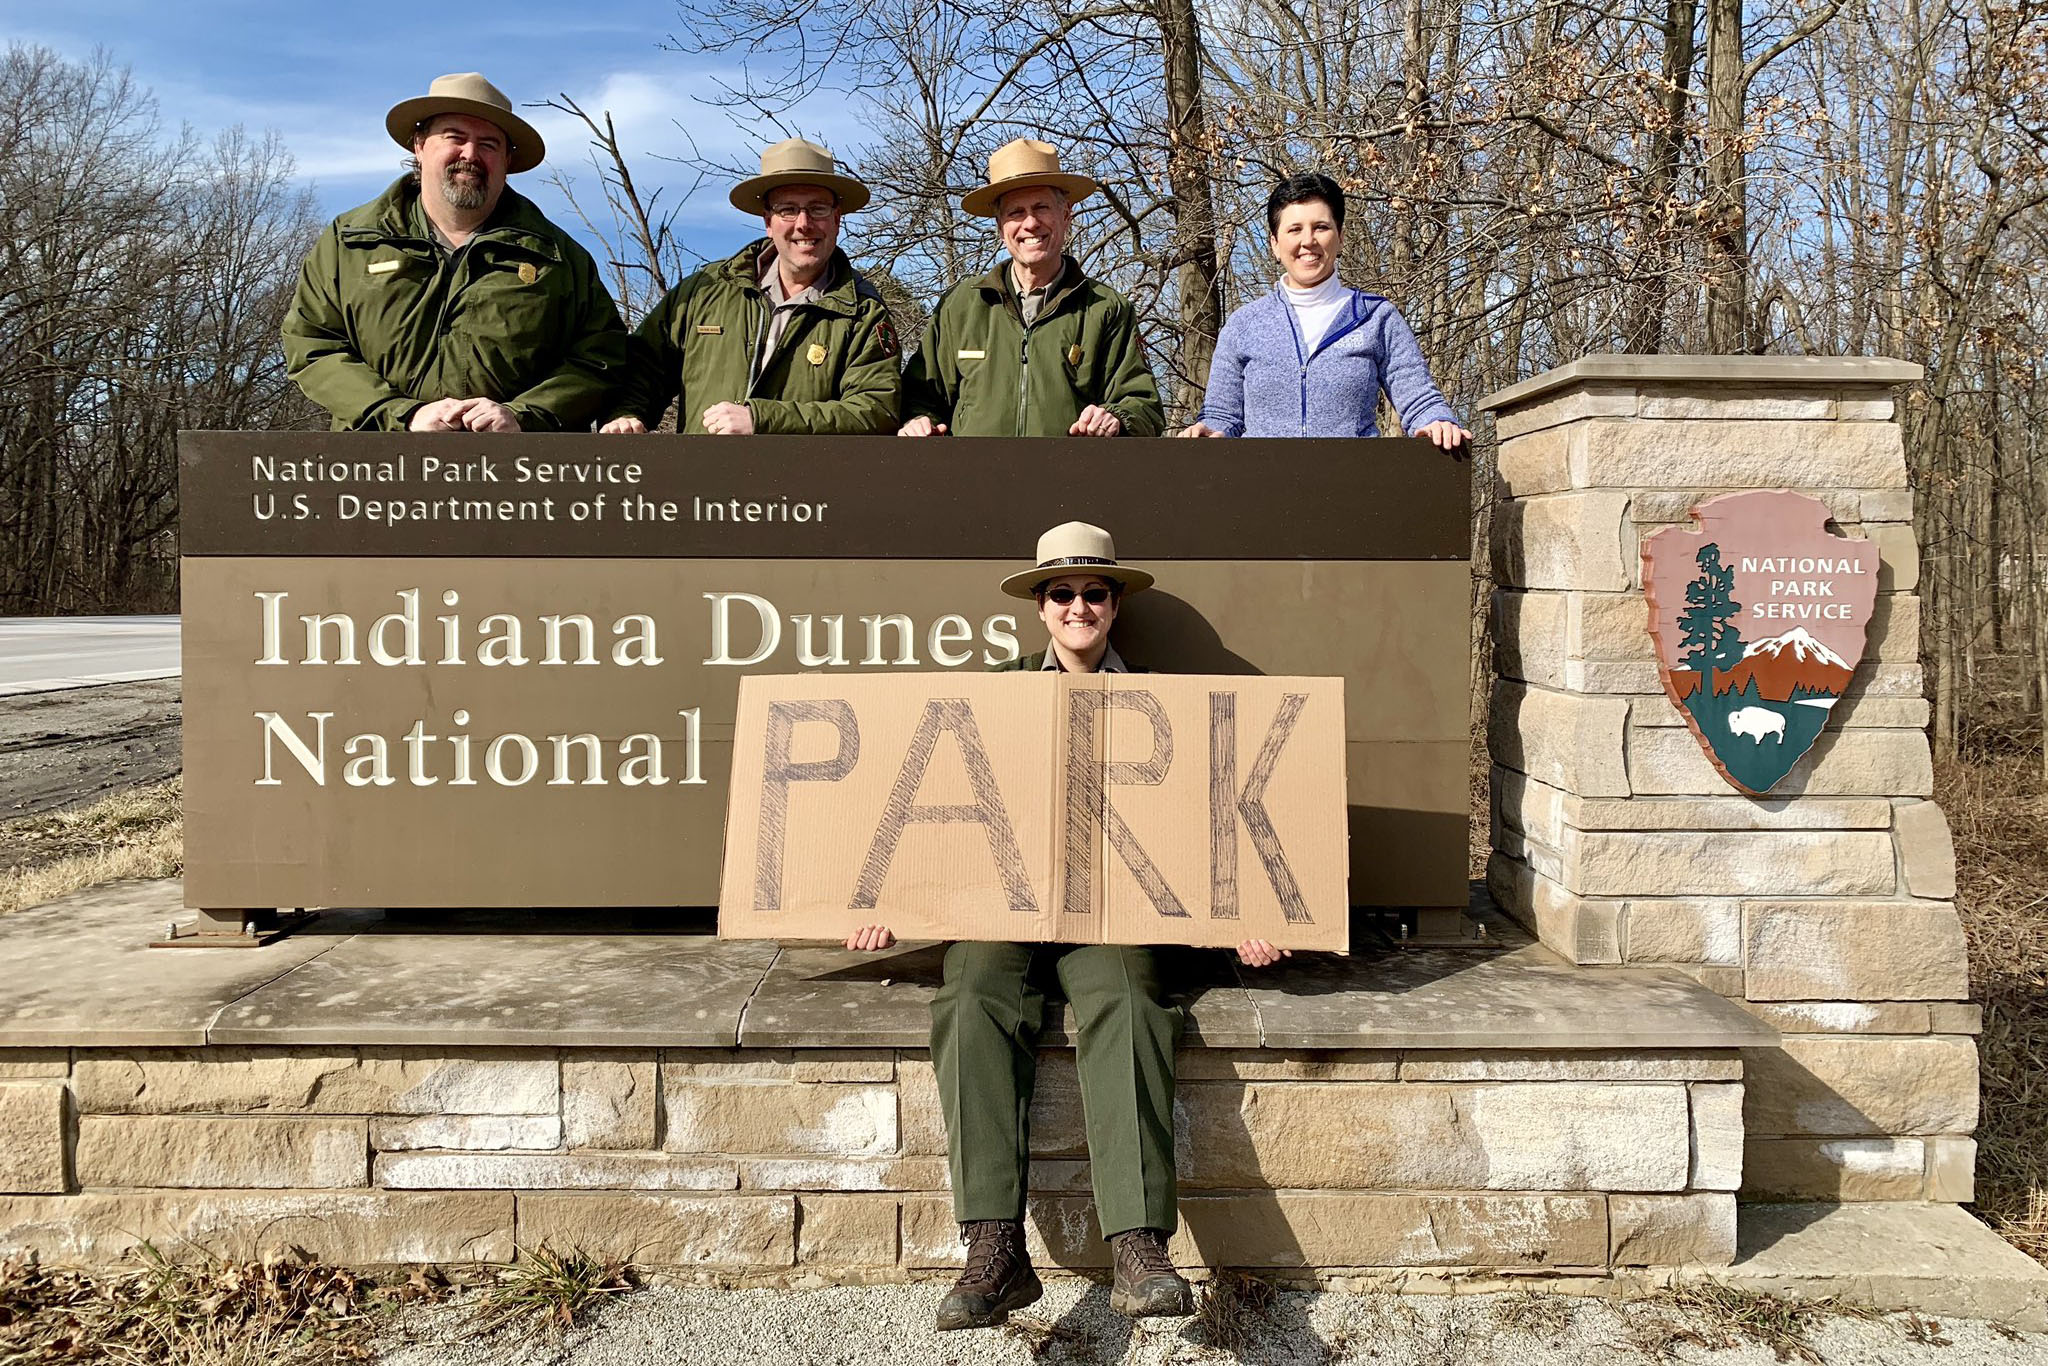 Indiana Dunes National Lakeshore is the state's first National Park.